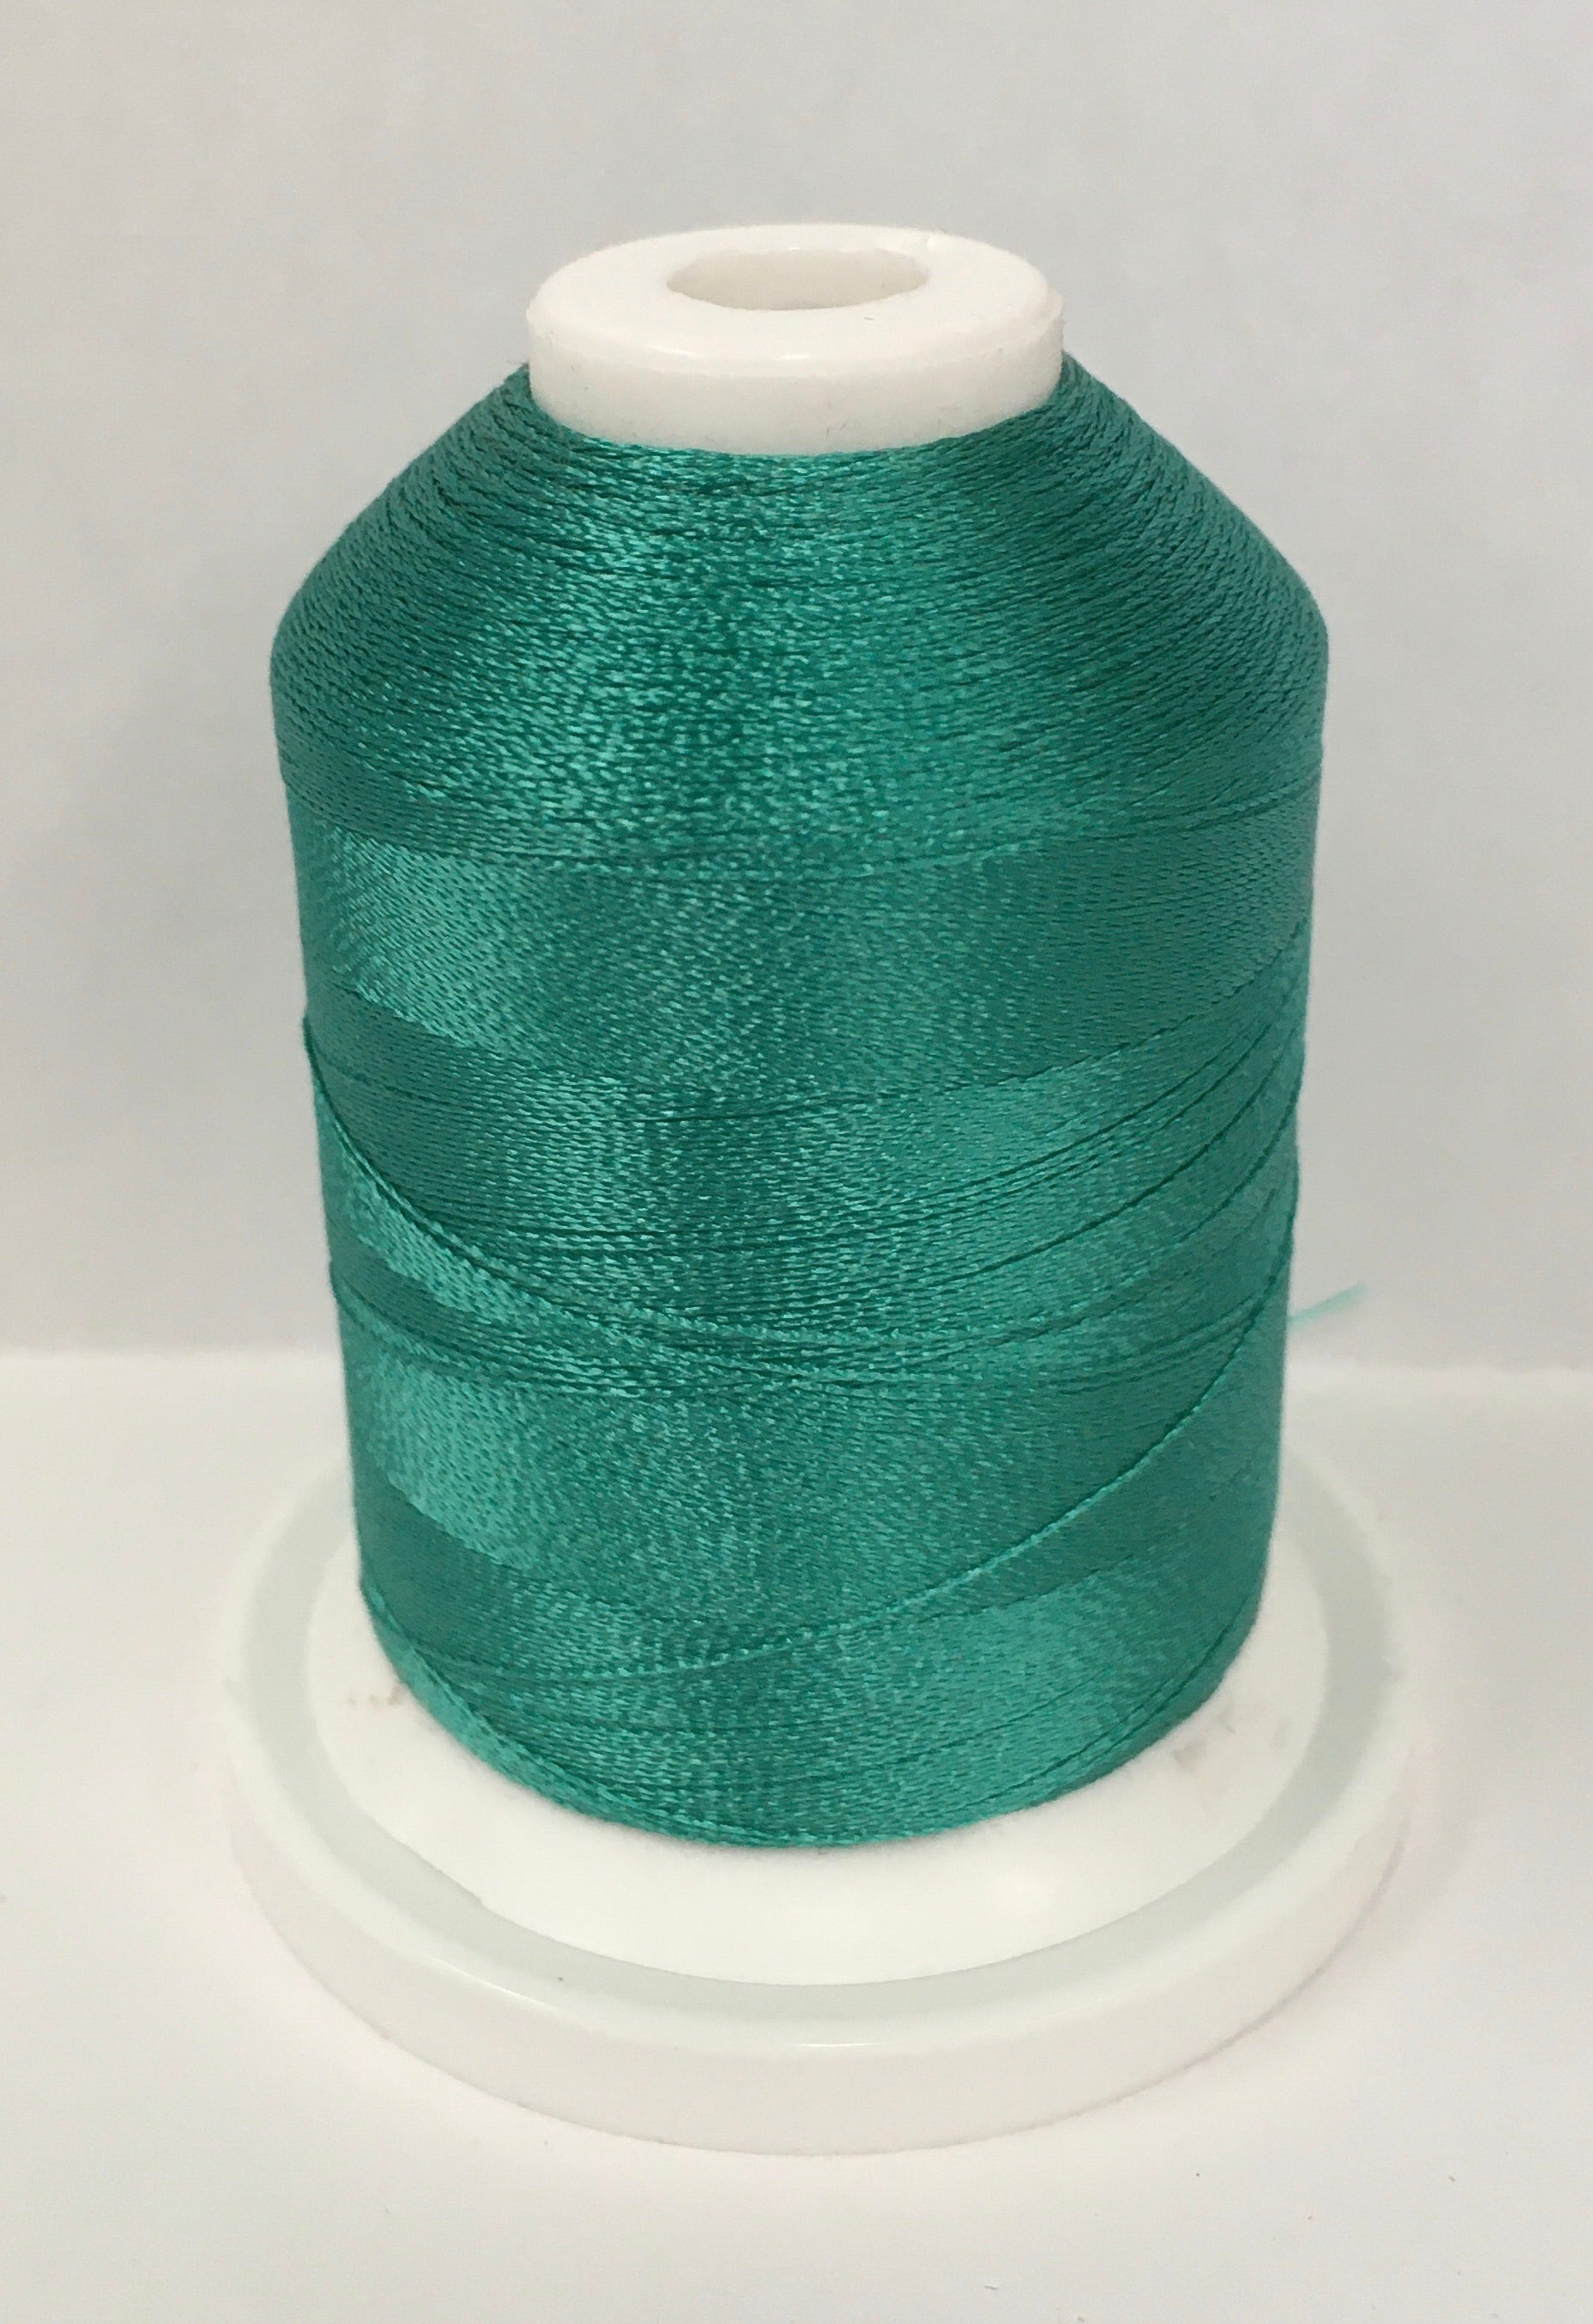 Robison-Anton Rayon Thread - 2390 Peppermint